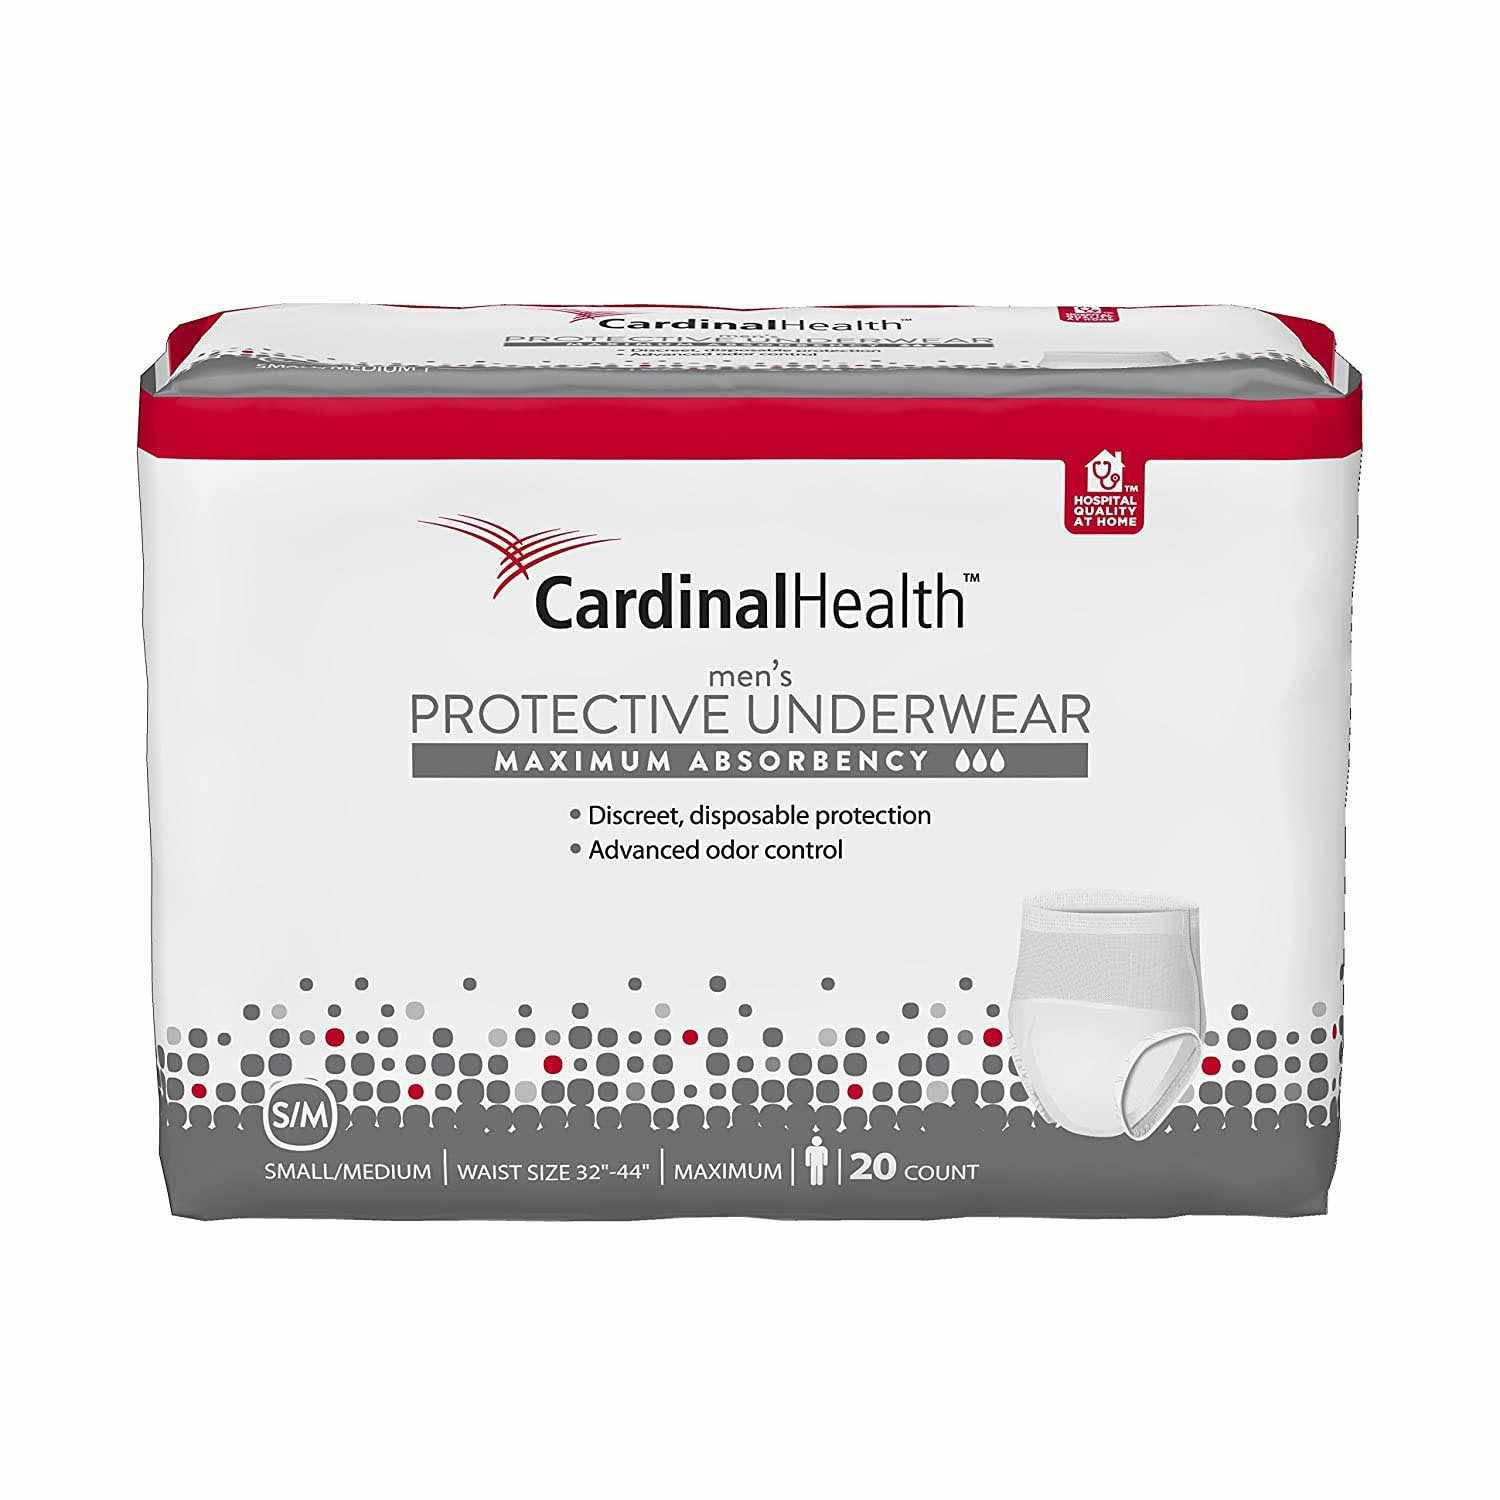 Cardinal Health Maximum Absorbency Protective Underwear for Men, 32